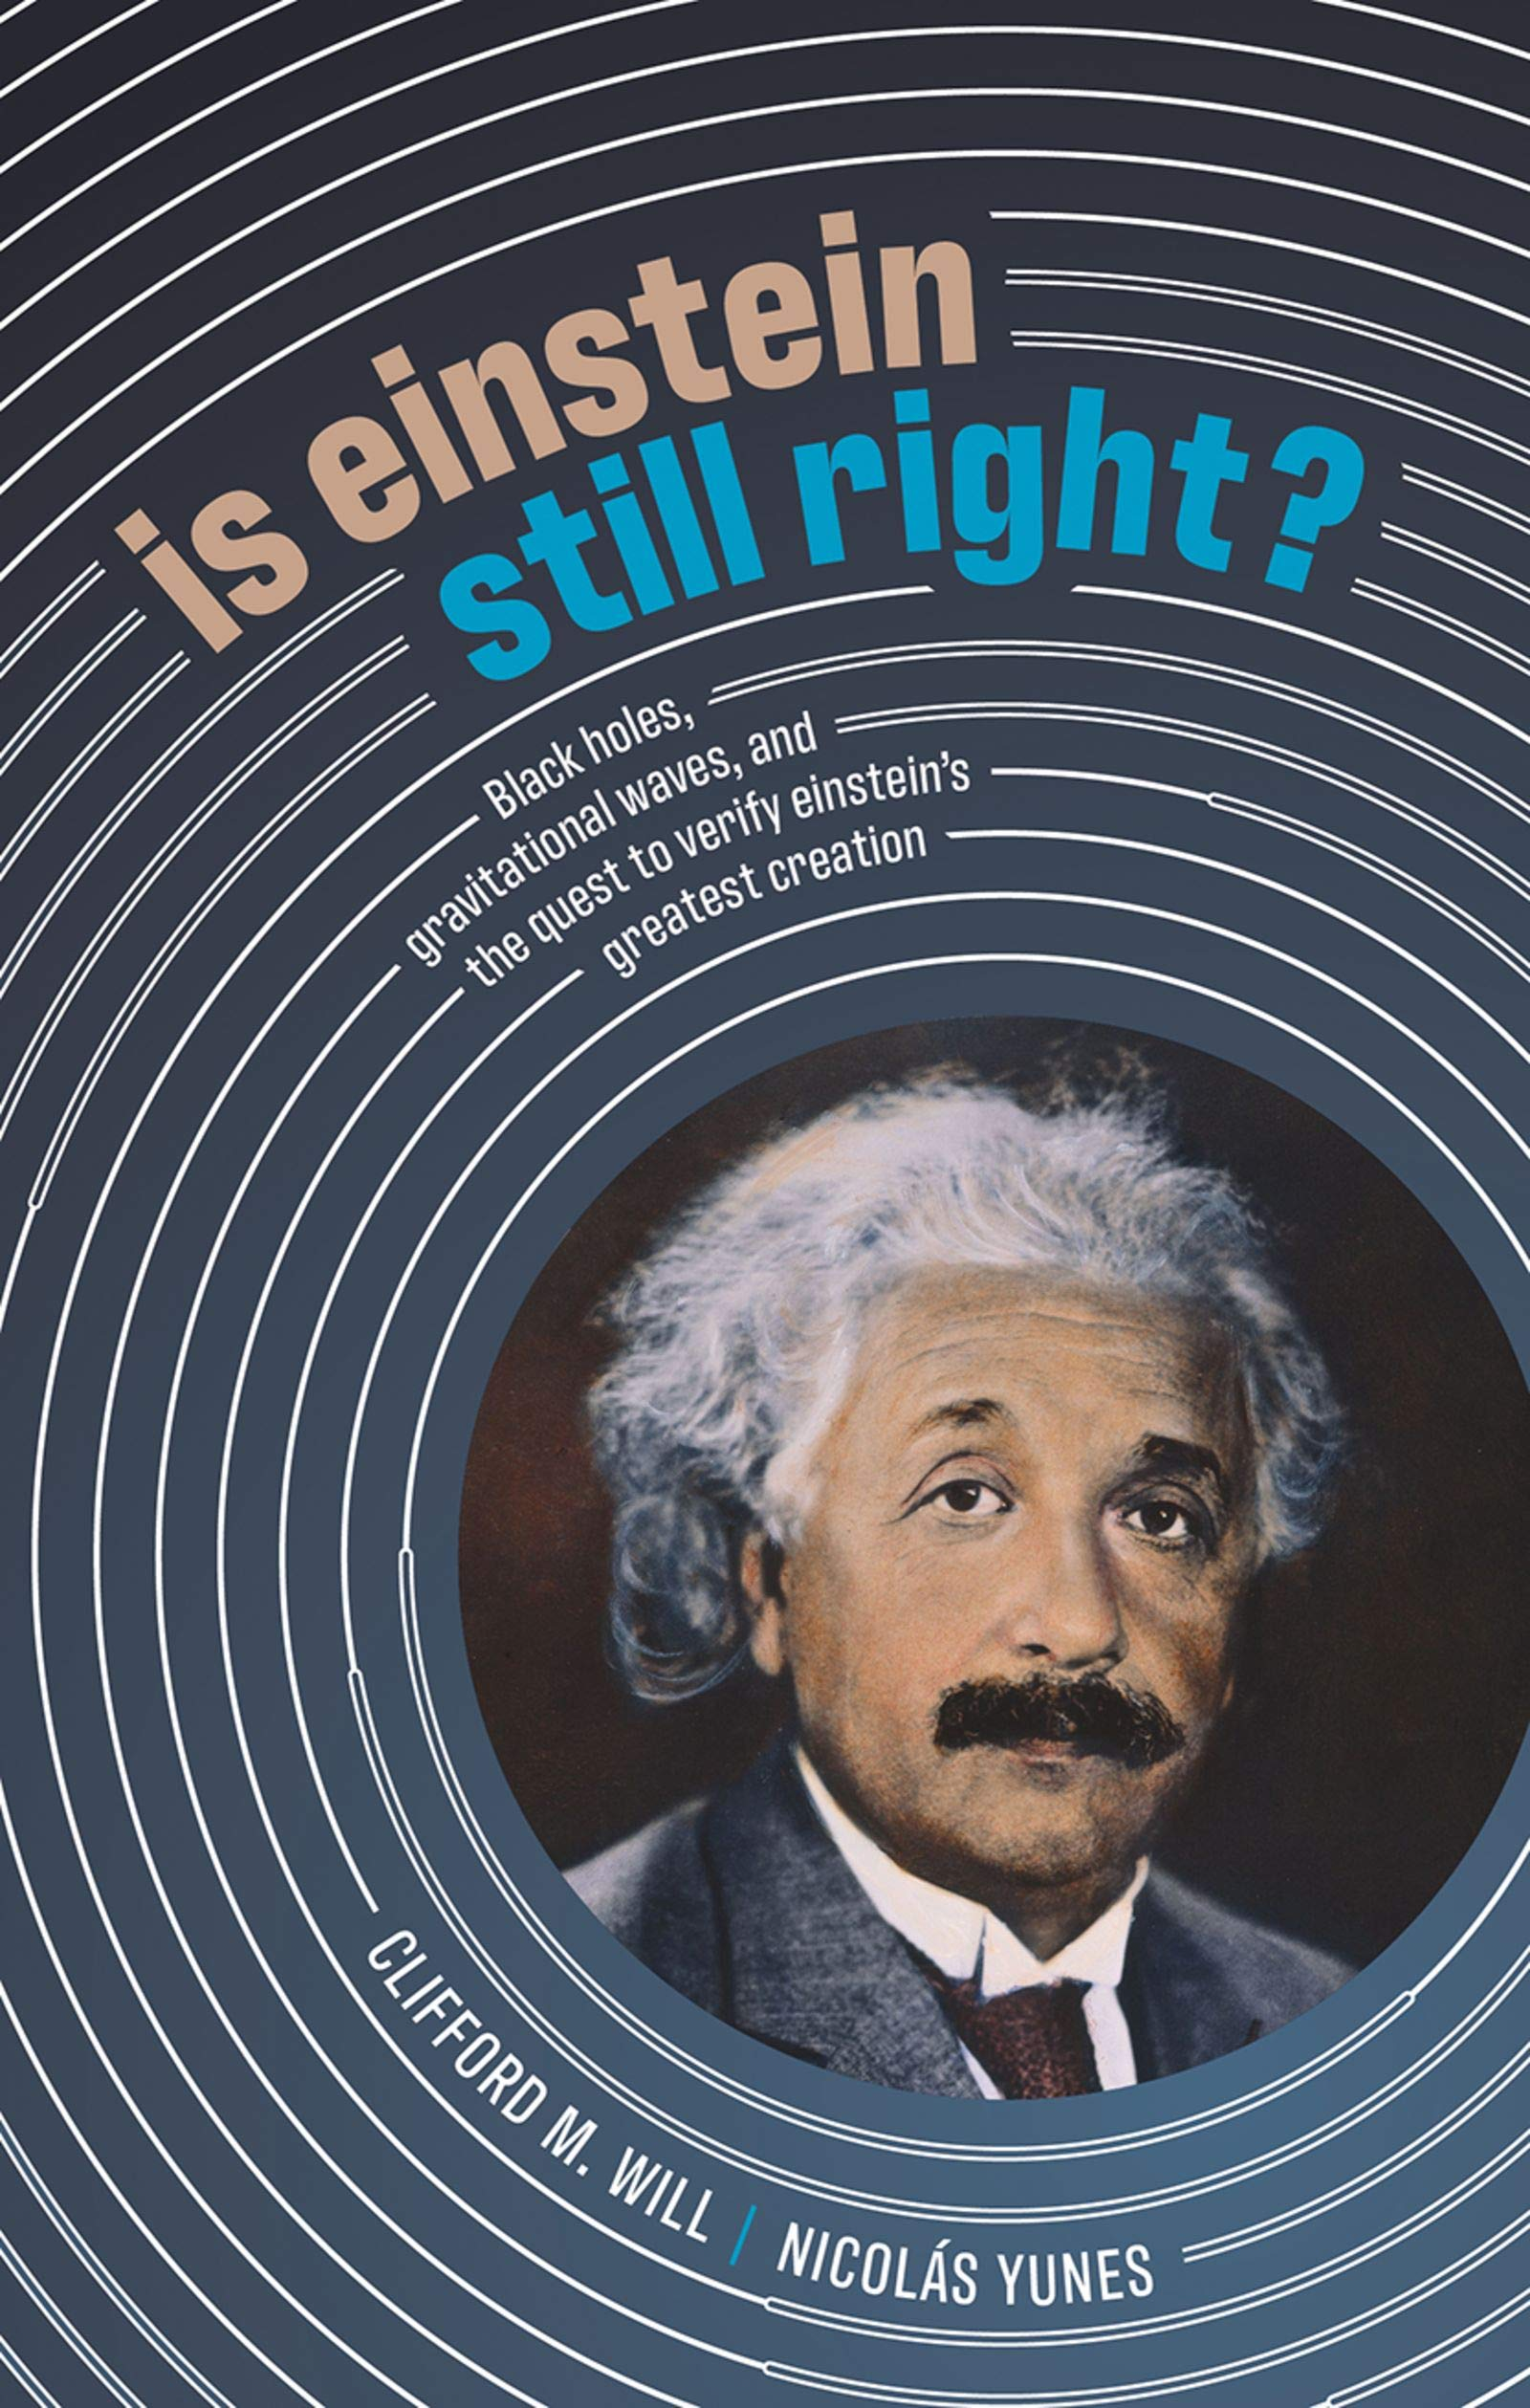 Is Einstein Still Right?: Black Holes, Gravitational Waves, And The Quest To Verify Einstein's Greatest Creation